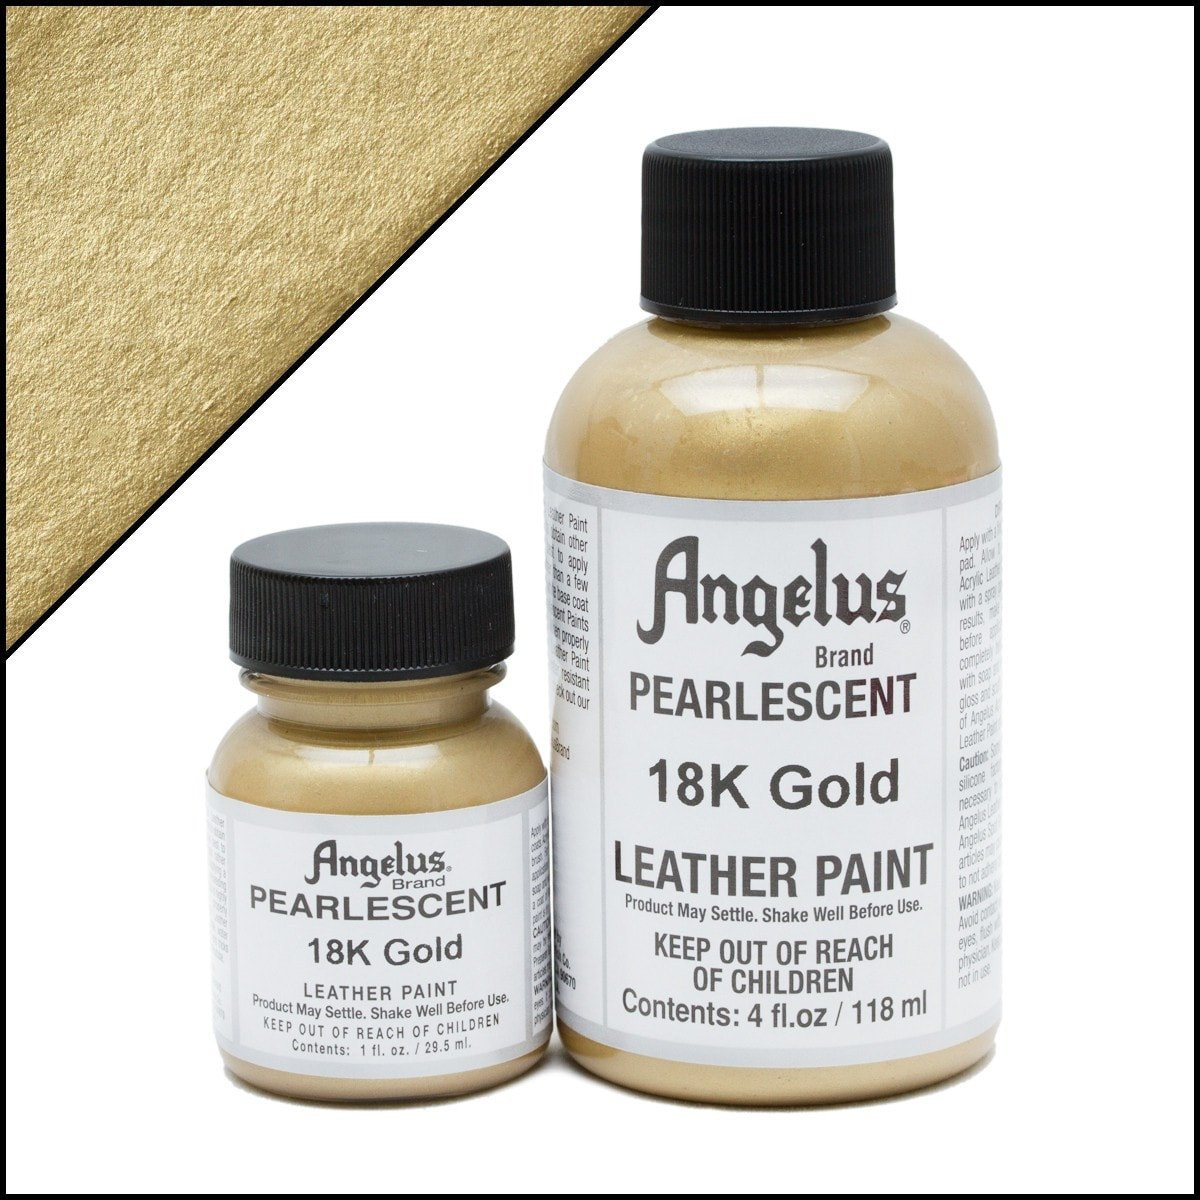 Angelus Pearlescent 18K Gold Paint